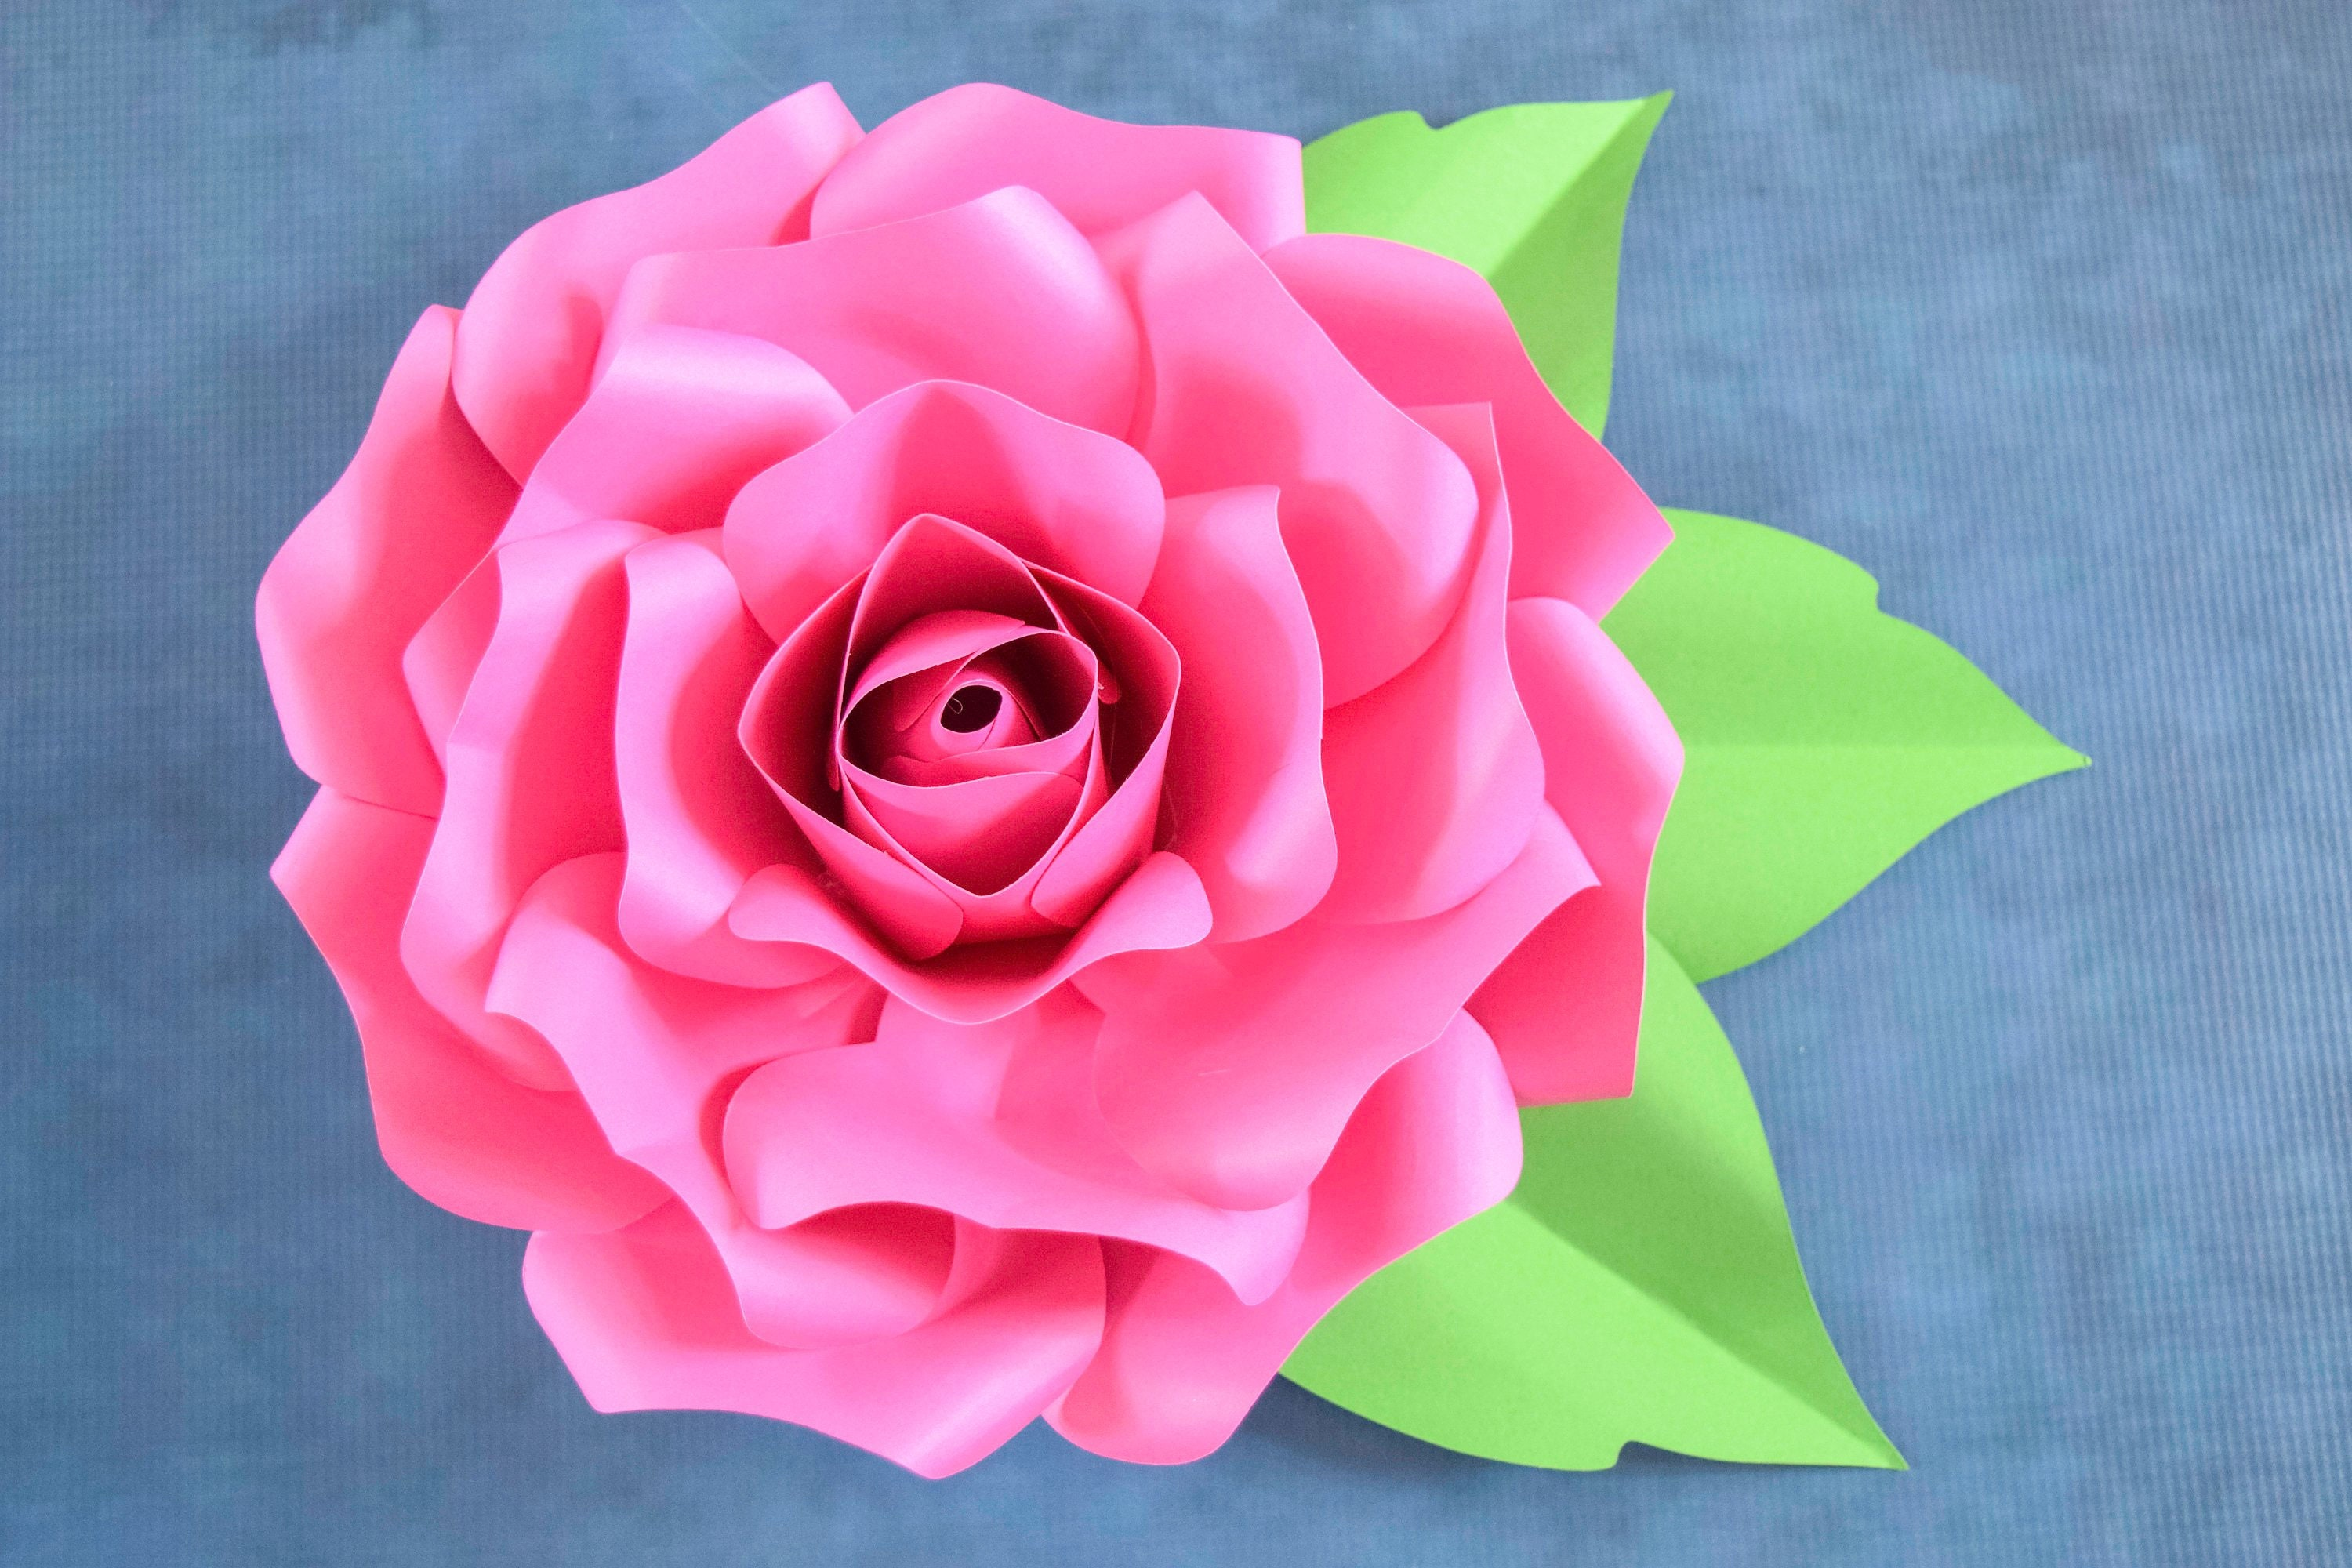 Paper Roses Paper Flower Svg Giant Paper Roses Large Paper Flowers Flower Templates Svg Cut Files Rose Templates Catching Colorflies